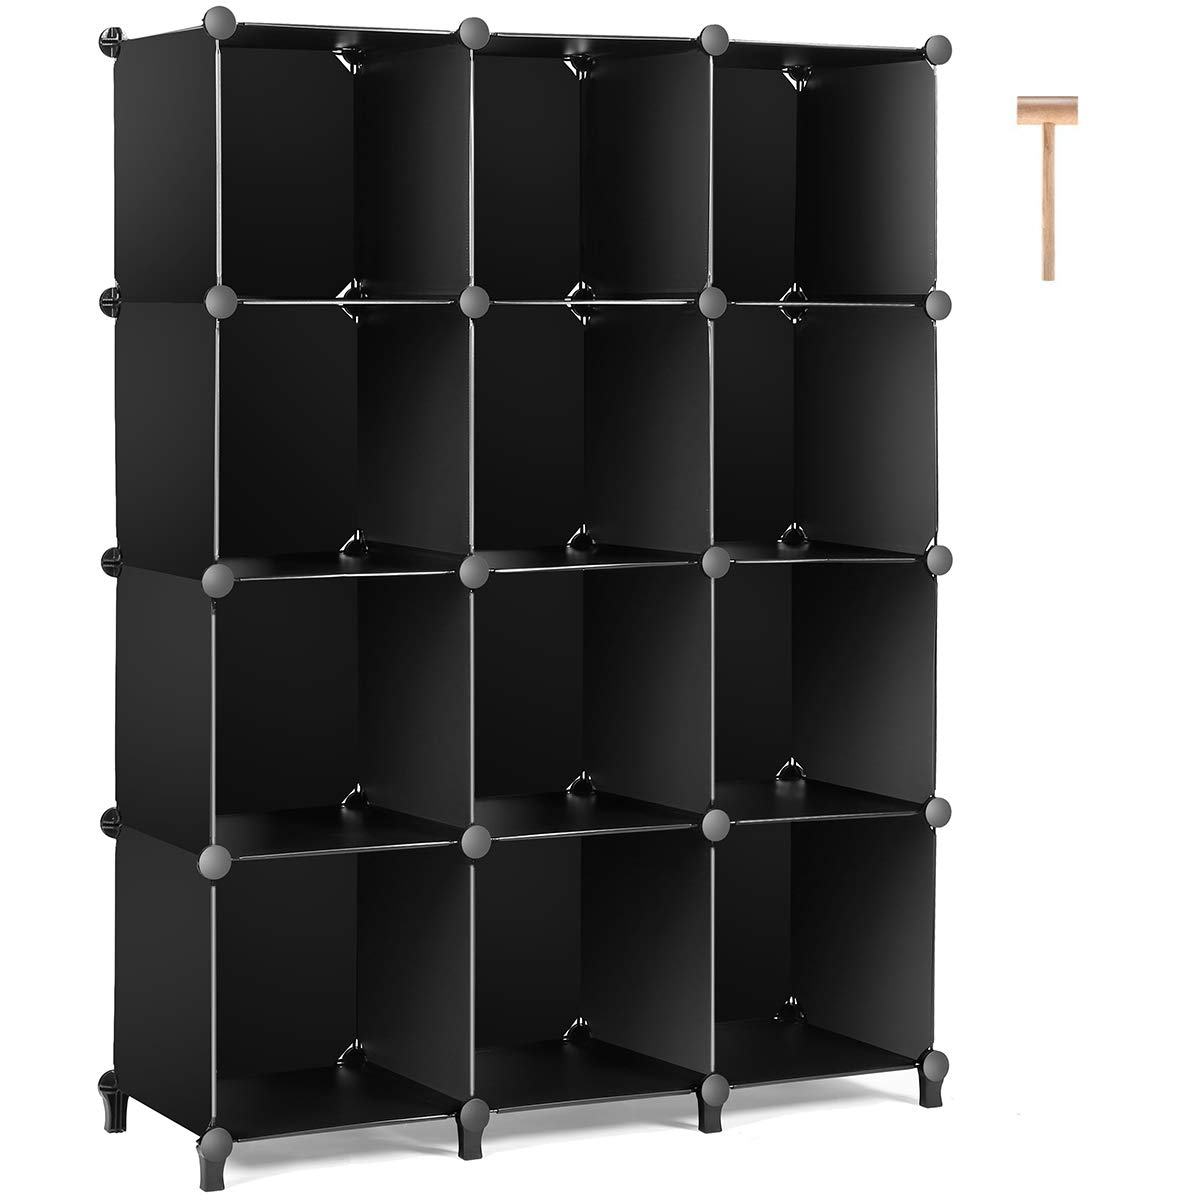 TomCare Cube Storage 12-Cube Bookshelf Closet Organizer Storage Shelves Shelf Cubes Organizer Plastic Book Shelf Bookcase DIY Square Closet Cabinet Shelves for Bedroom Office Living Room, Black